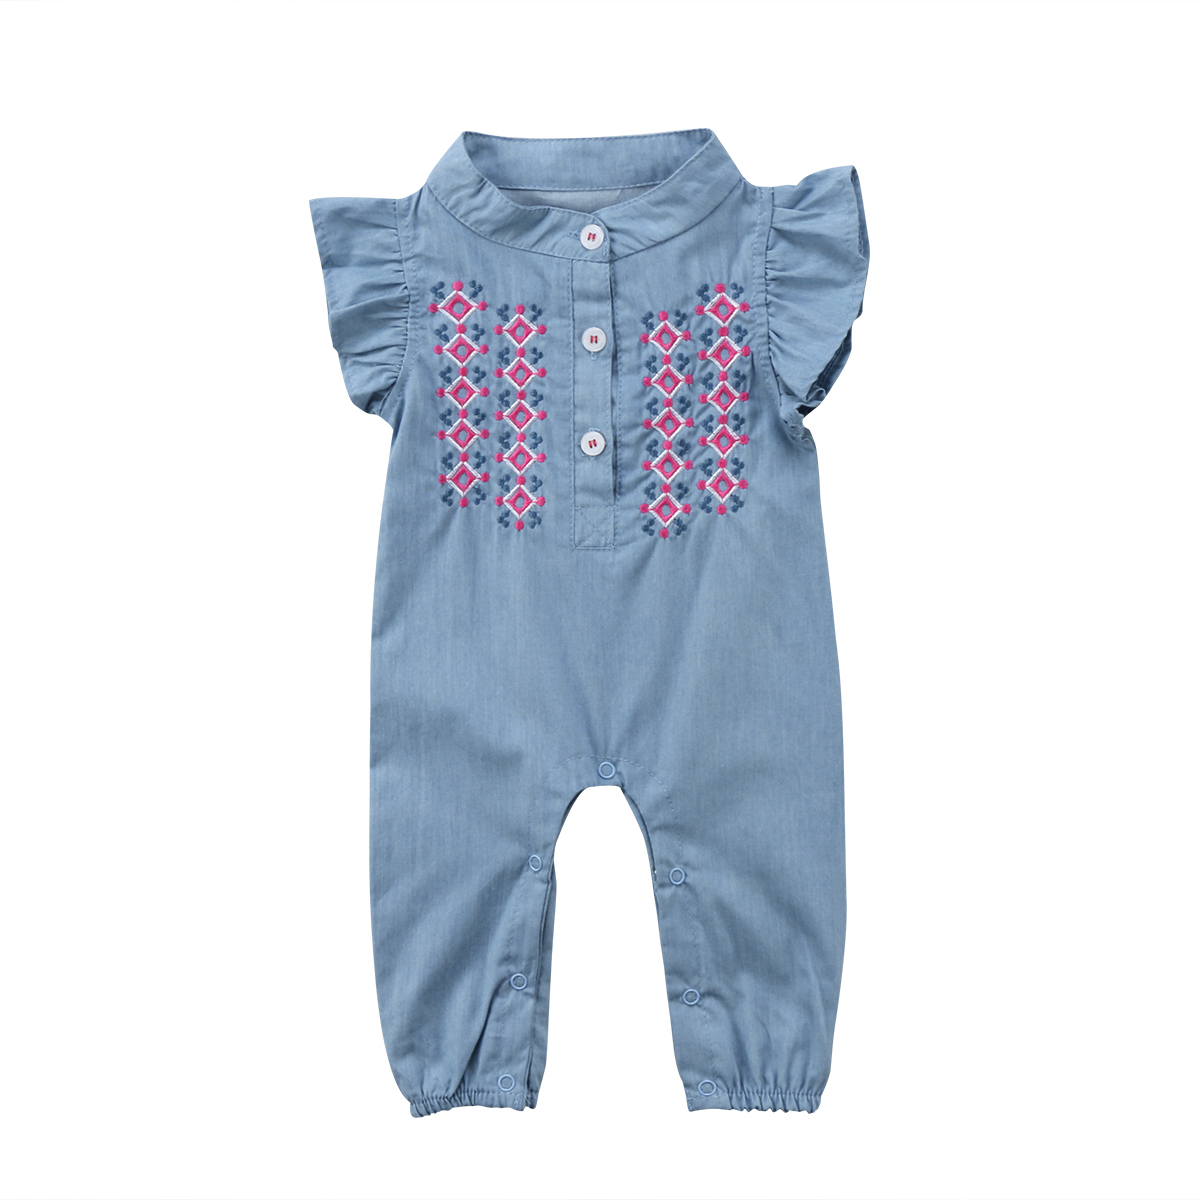 Infant Newborn Baby Girls Clothing Rompers Flower Sunsuit Playsuit Short Sleeve Jumpsuit Romper Outfit Clothes Baby Girl 0-24M newborn infant baby girls boys rompers long sleeve cotton casual romper jumpsuit baby boy girl outfit costume